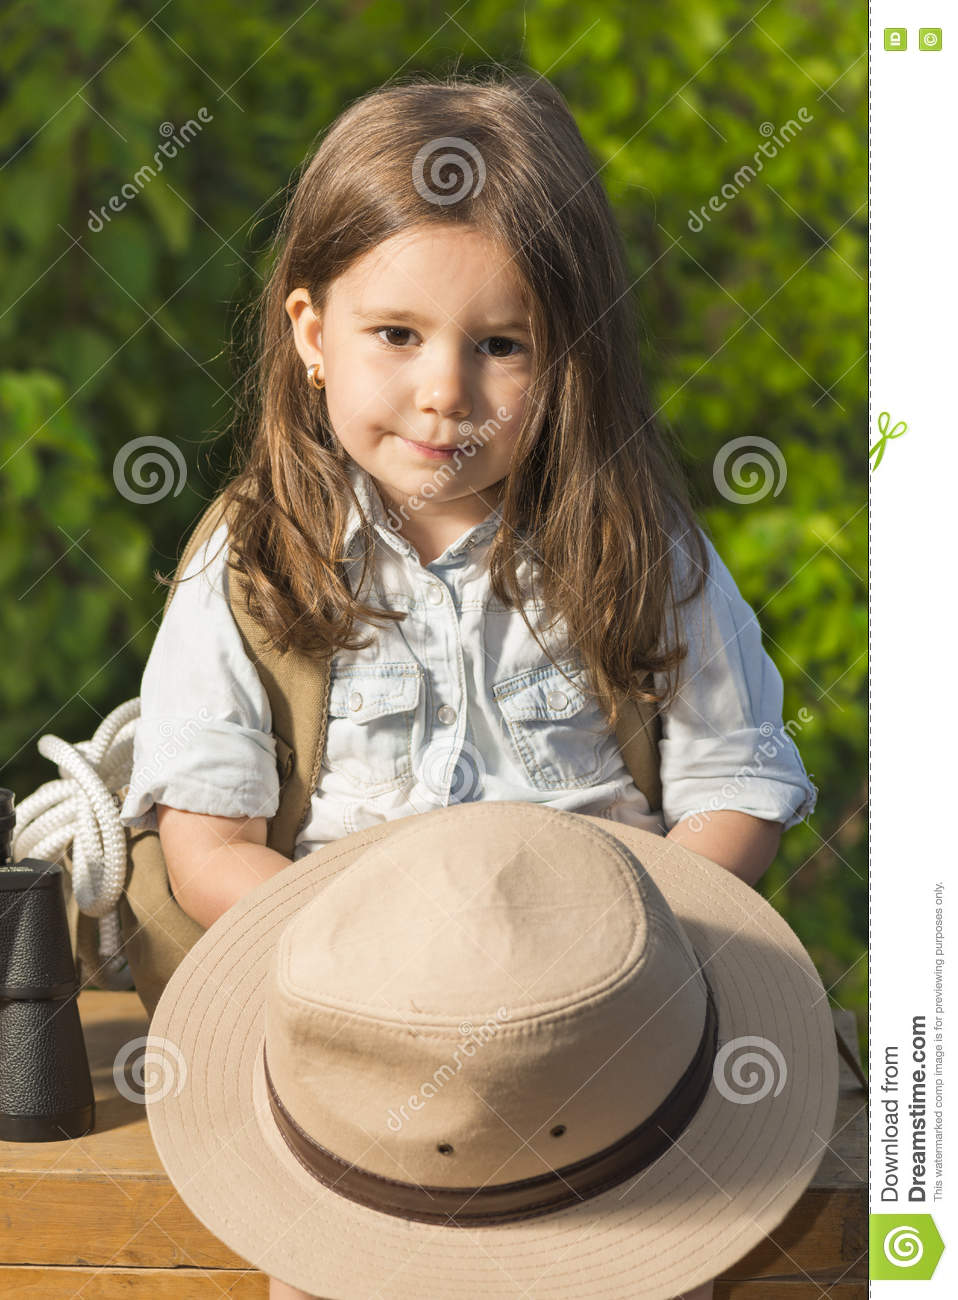 ecb0c423c4525 Adorable little girl in a safari hat and explorer clothes playing safari  sitting on wooden suitcase outdoor. Looking for the summer vacation